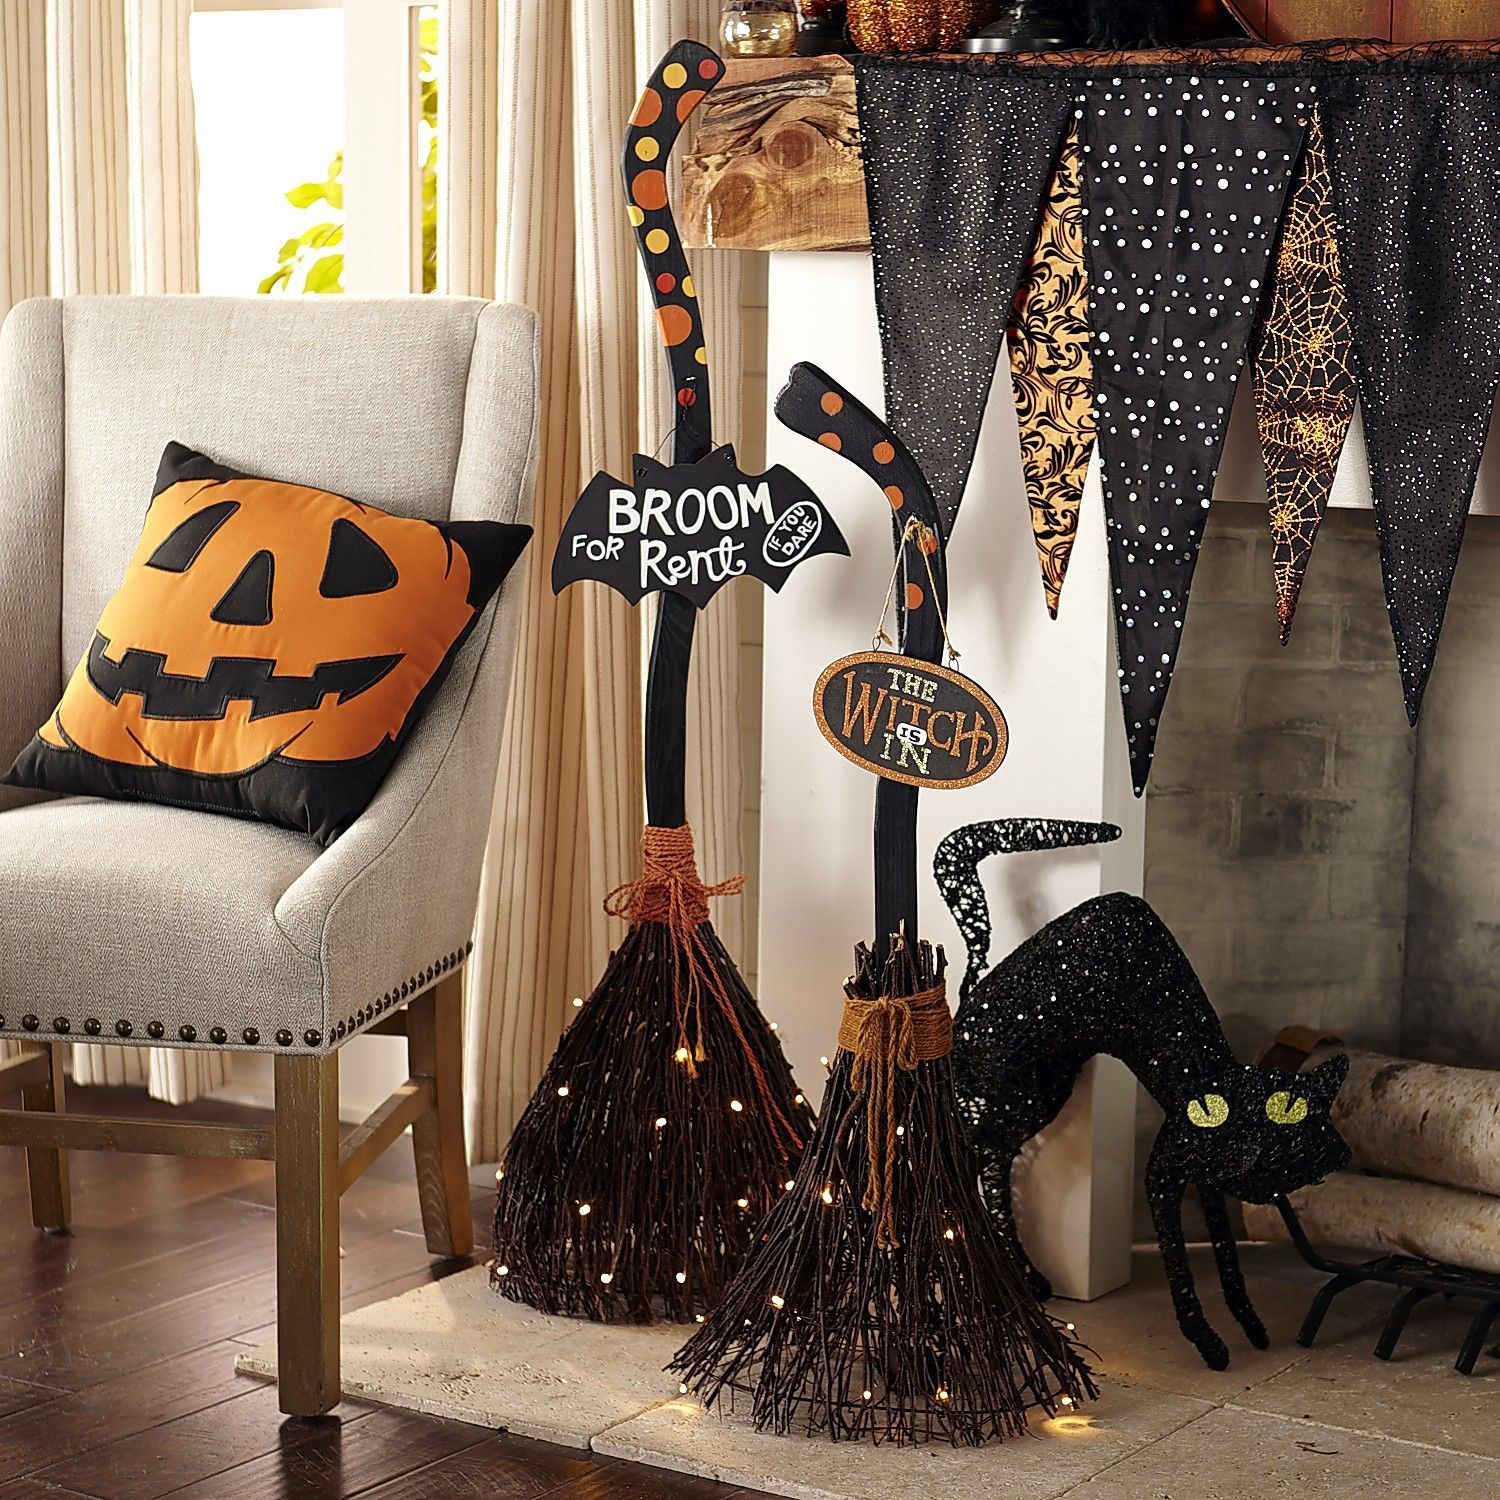 Pier One Decorating Ideas: Pre-Lit Broom For Rent Broom